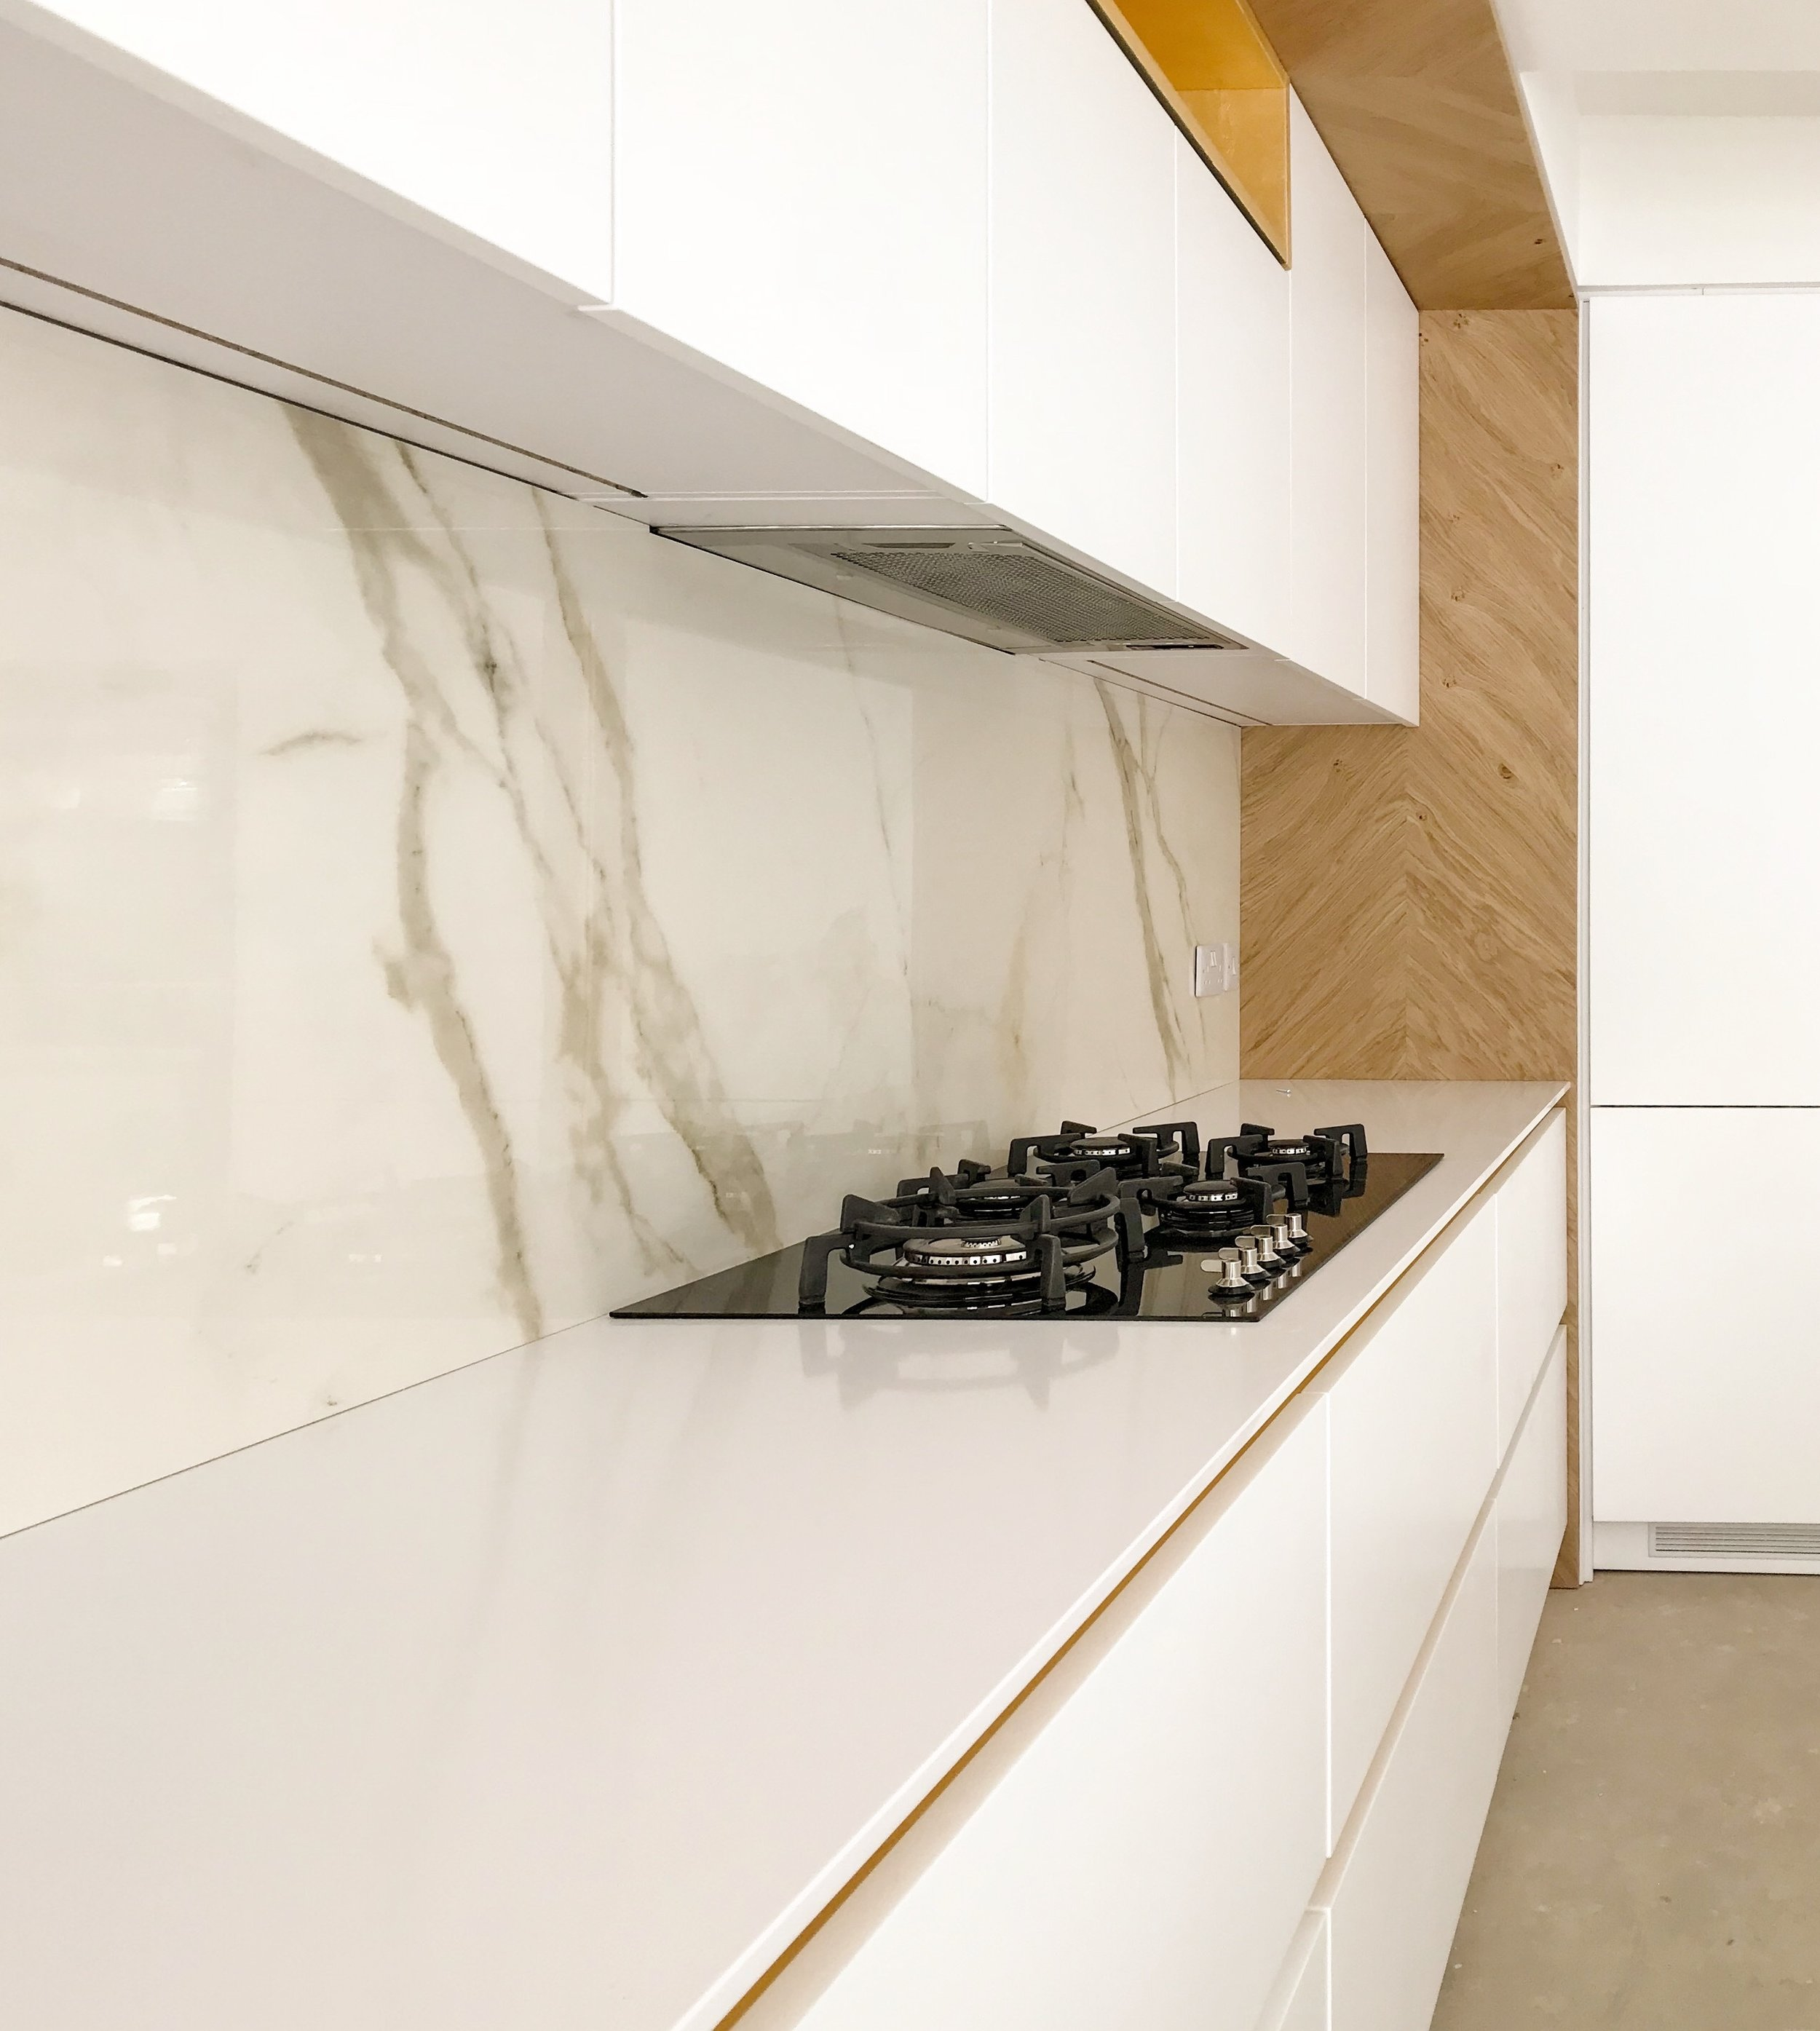 PietraCasa supplied and installed this kitchen splashback. Two pieces of Laminam 6mm templated and cut on site